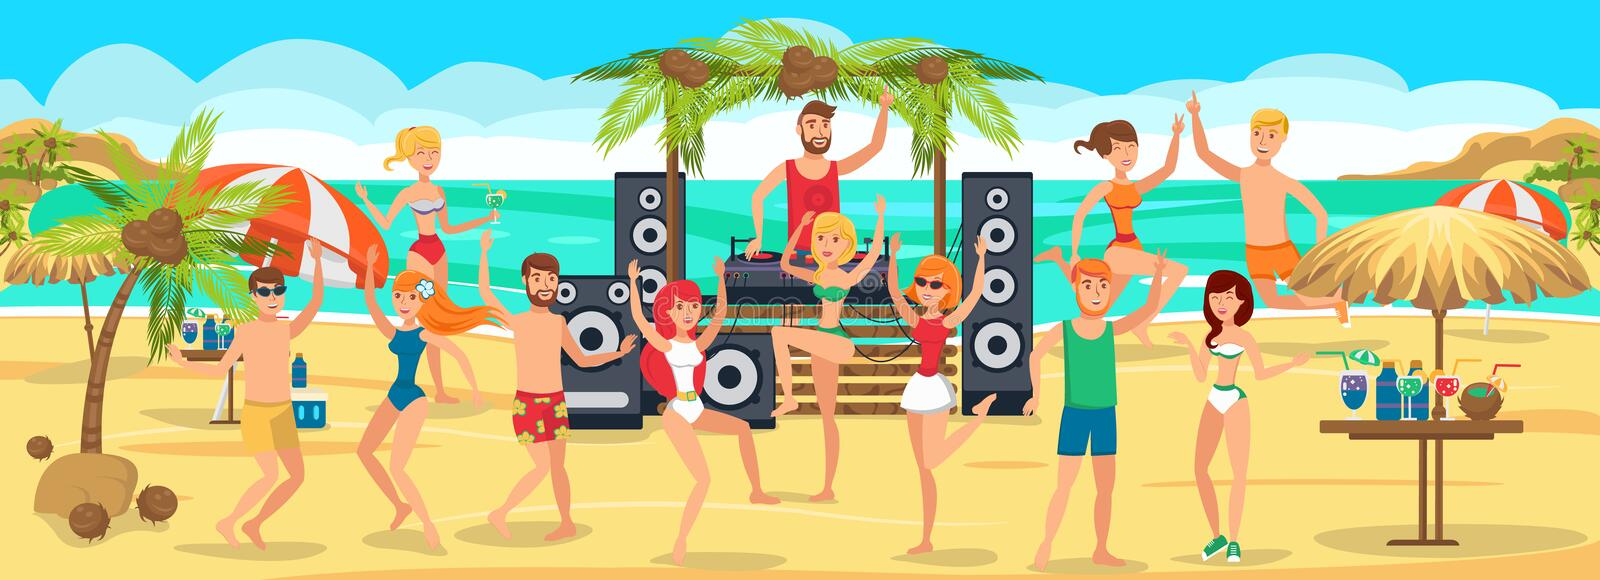 Beach Party. Youth Dances and drinks on Beach royalty free illustration